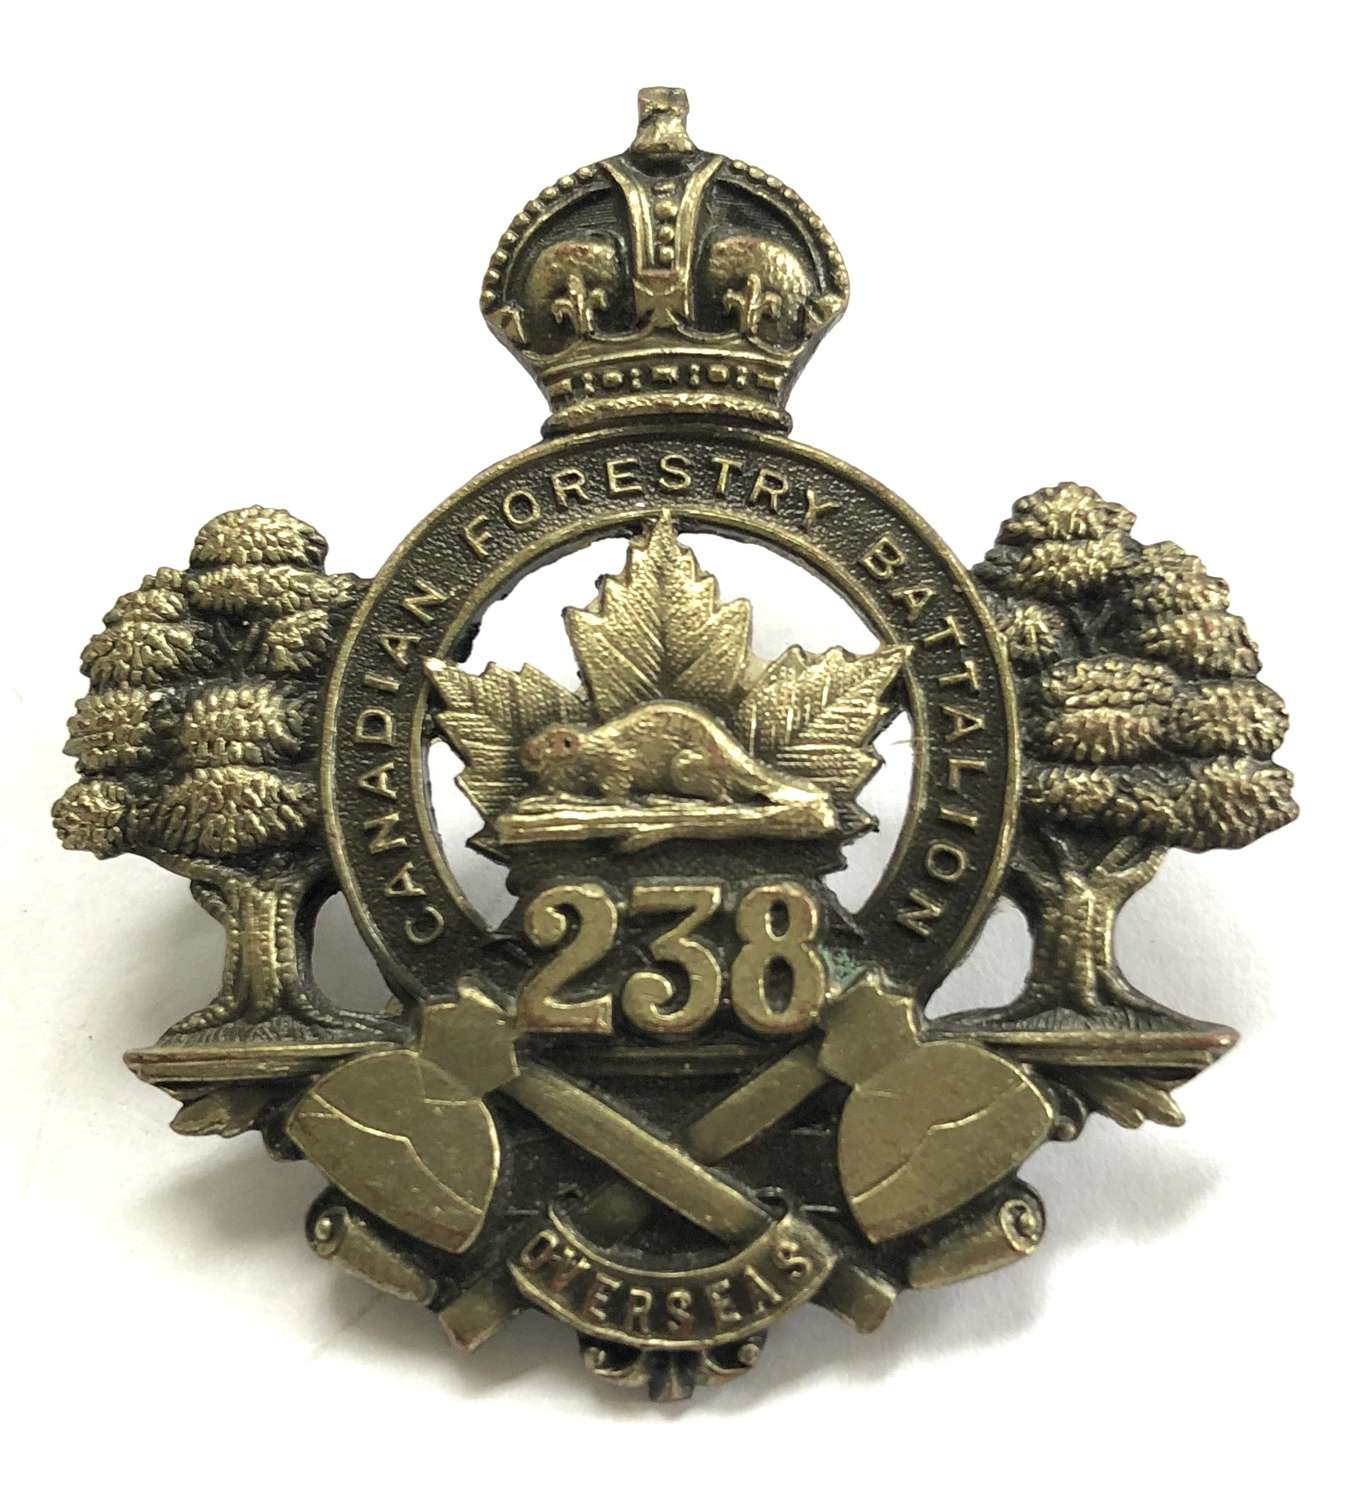 Canadian. 238th CEF (Forestry Bn.) WWI bronze cap badge